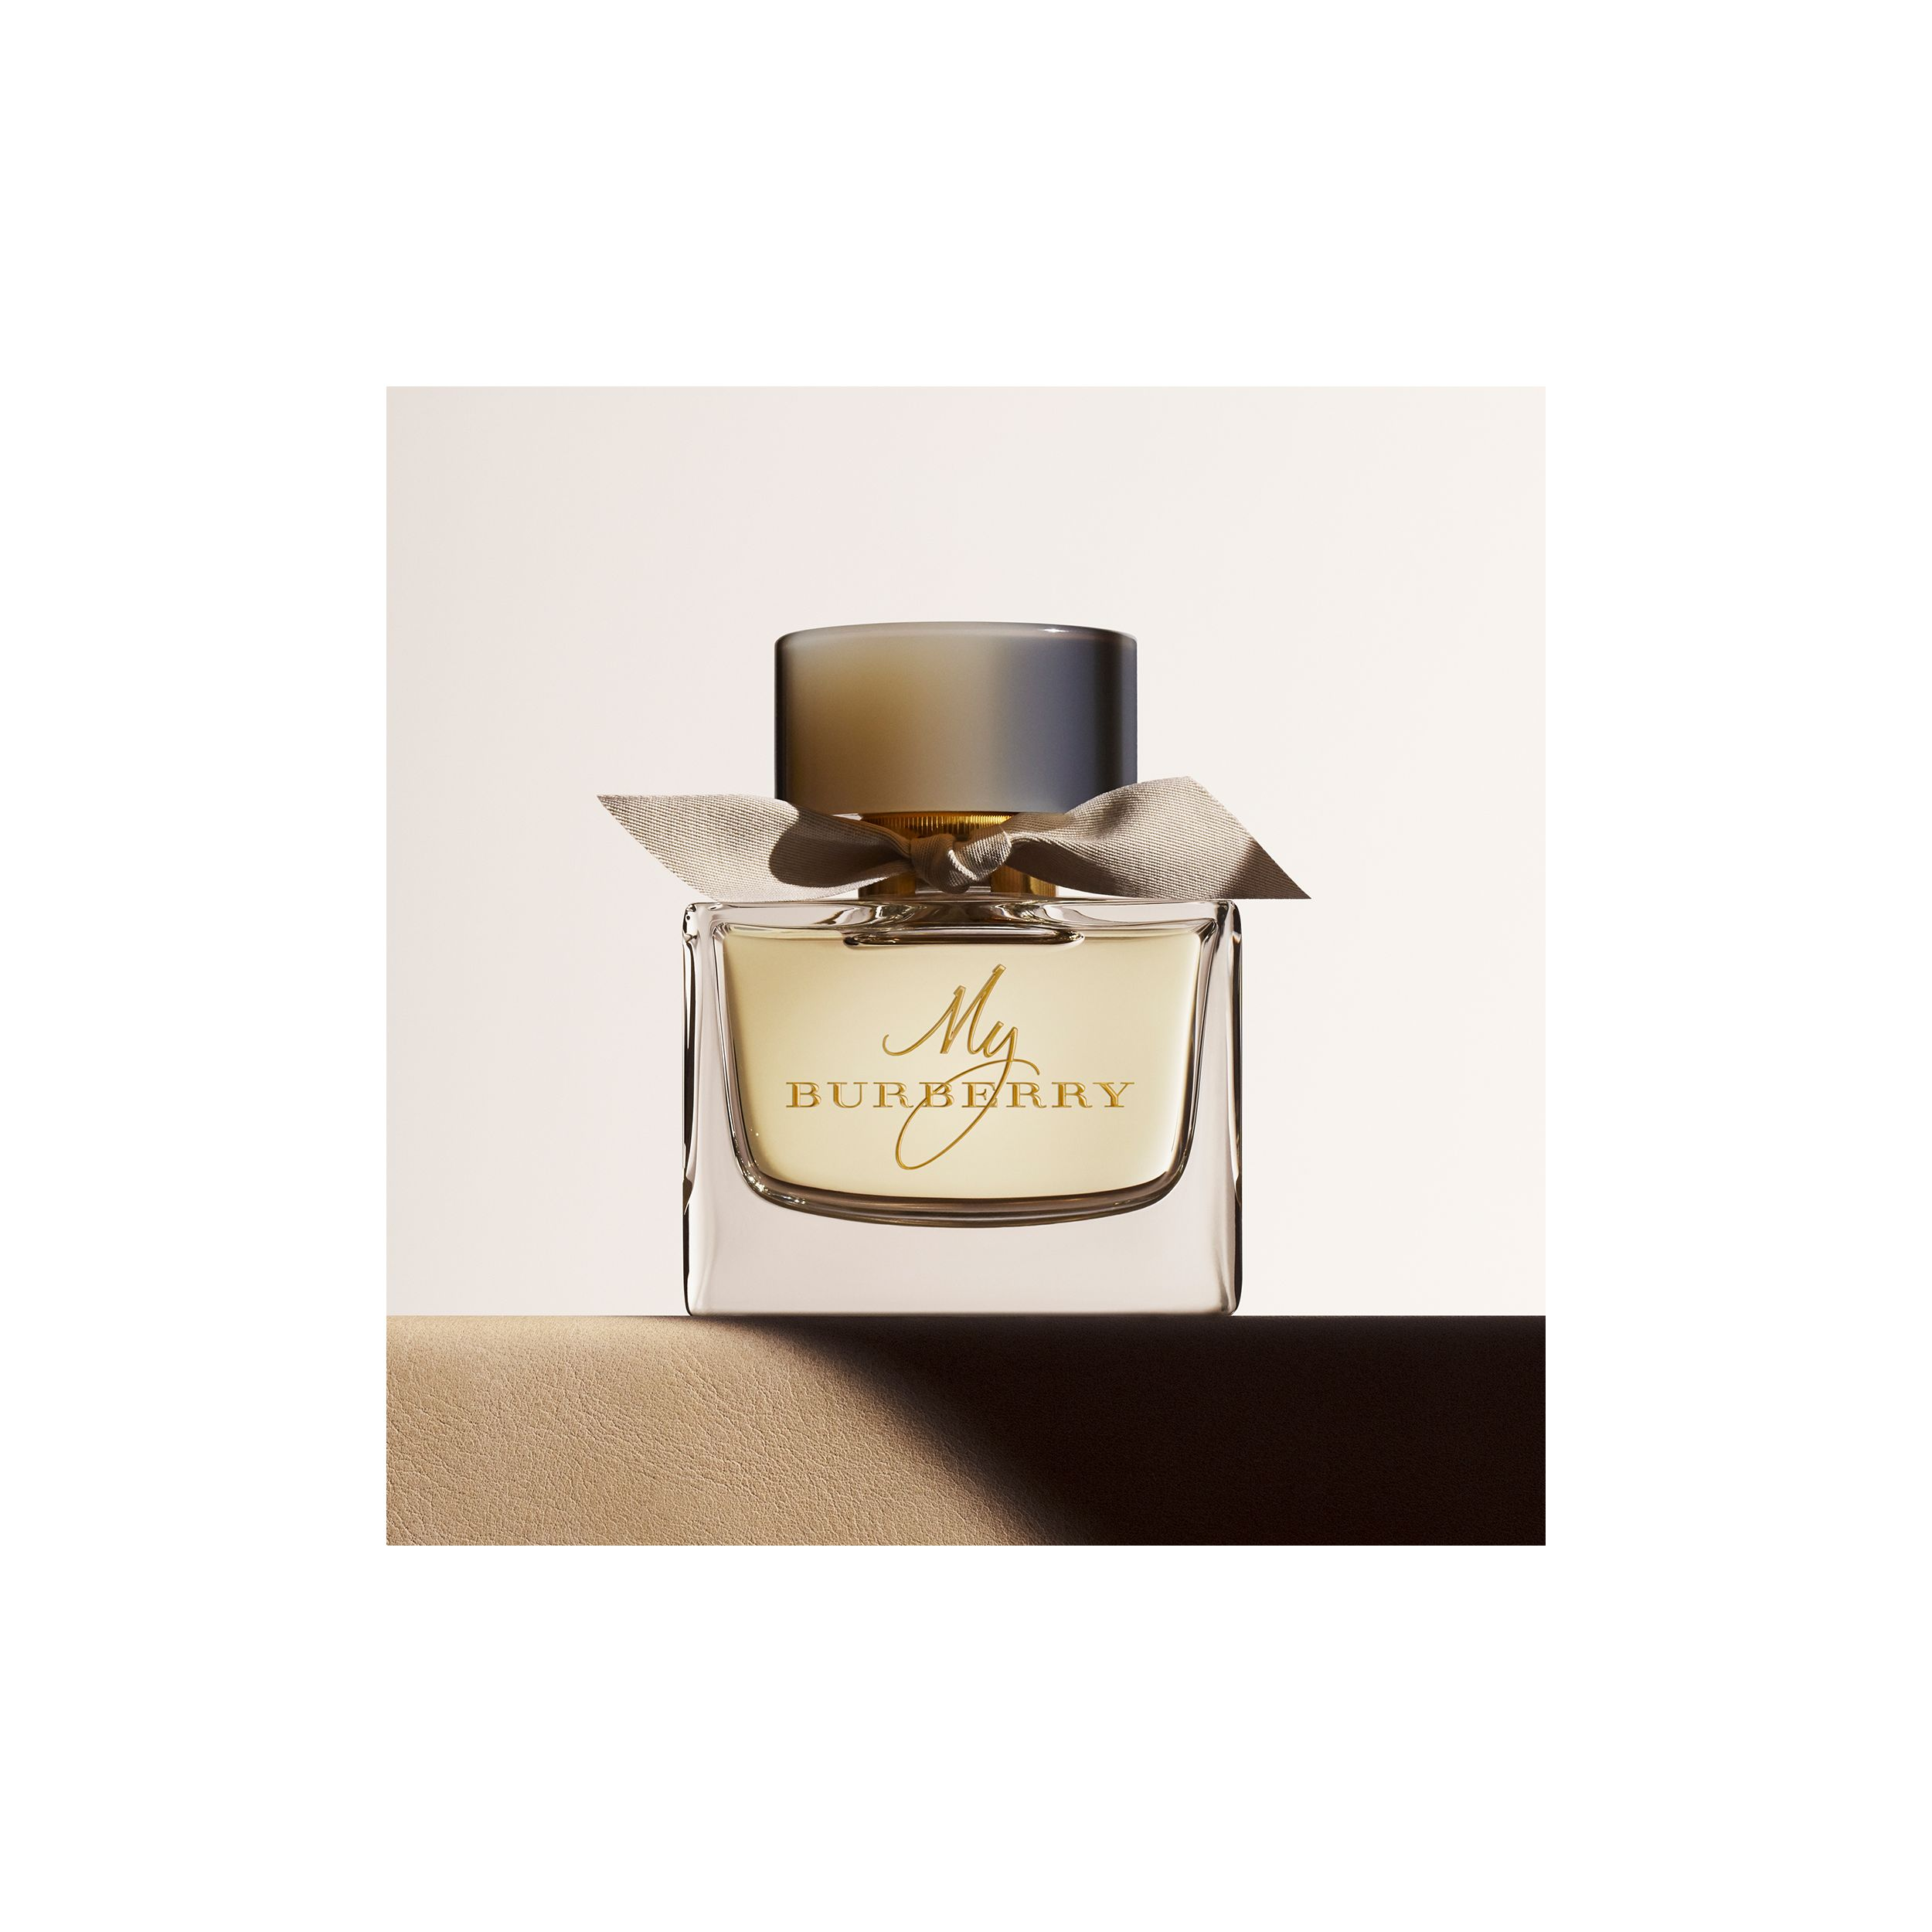 My Burberry Eau de Toilette 50ml - Women | Burberry Australia - 2